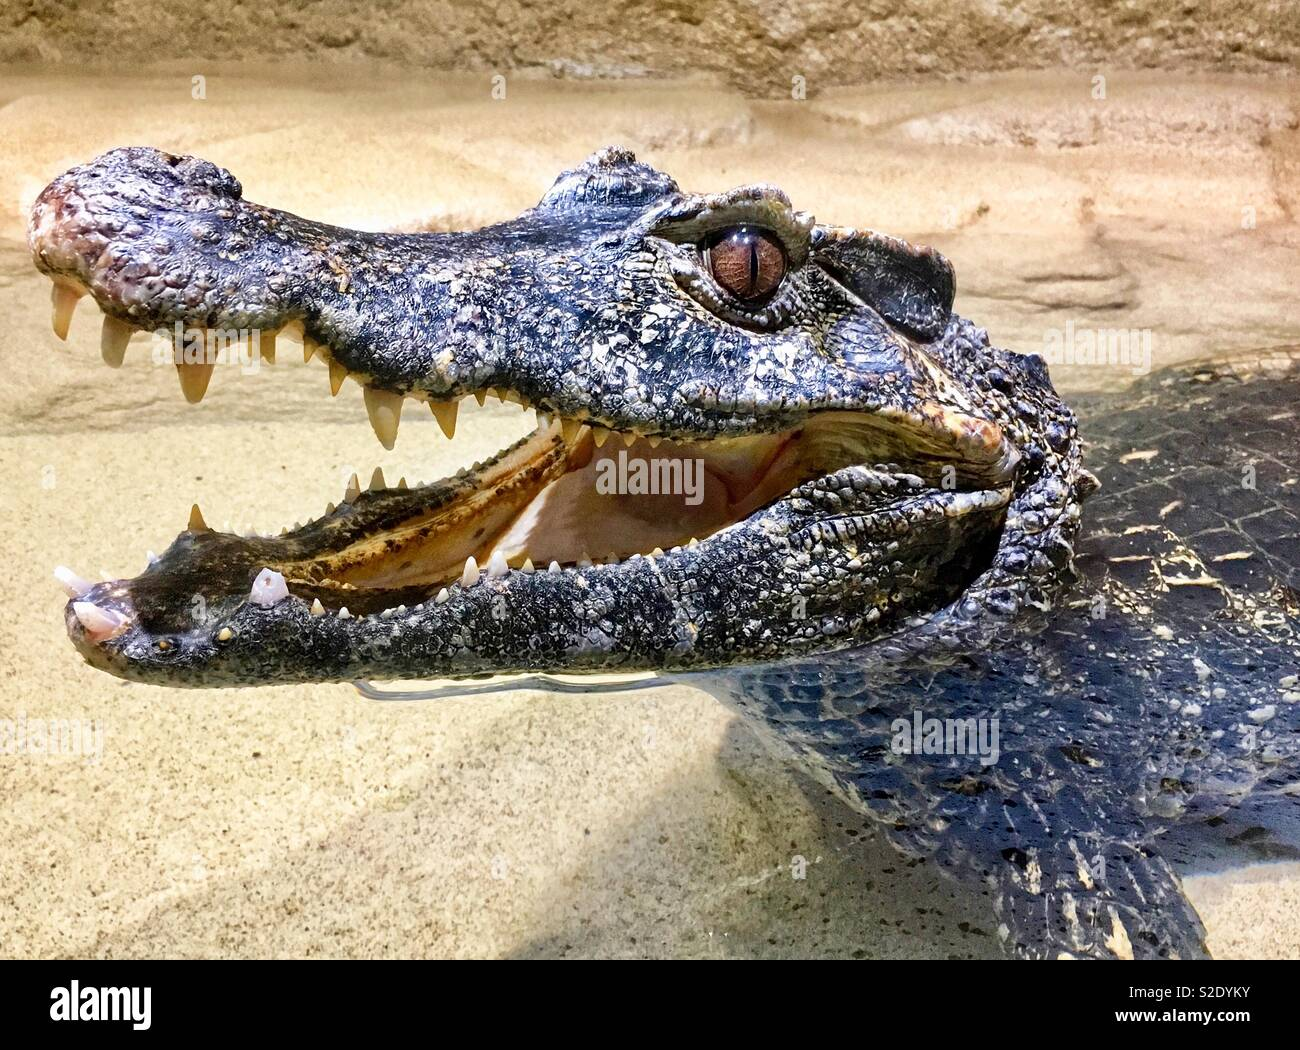 Caiman with open mouth showing teeth while laying in water - Stock Image